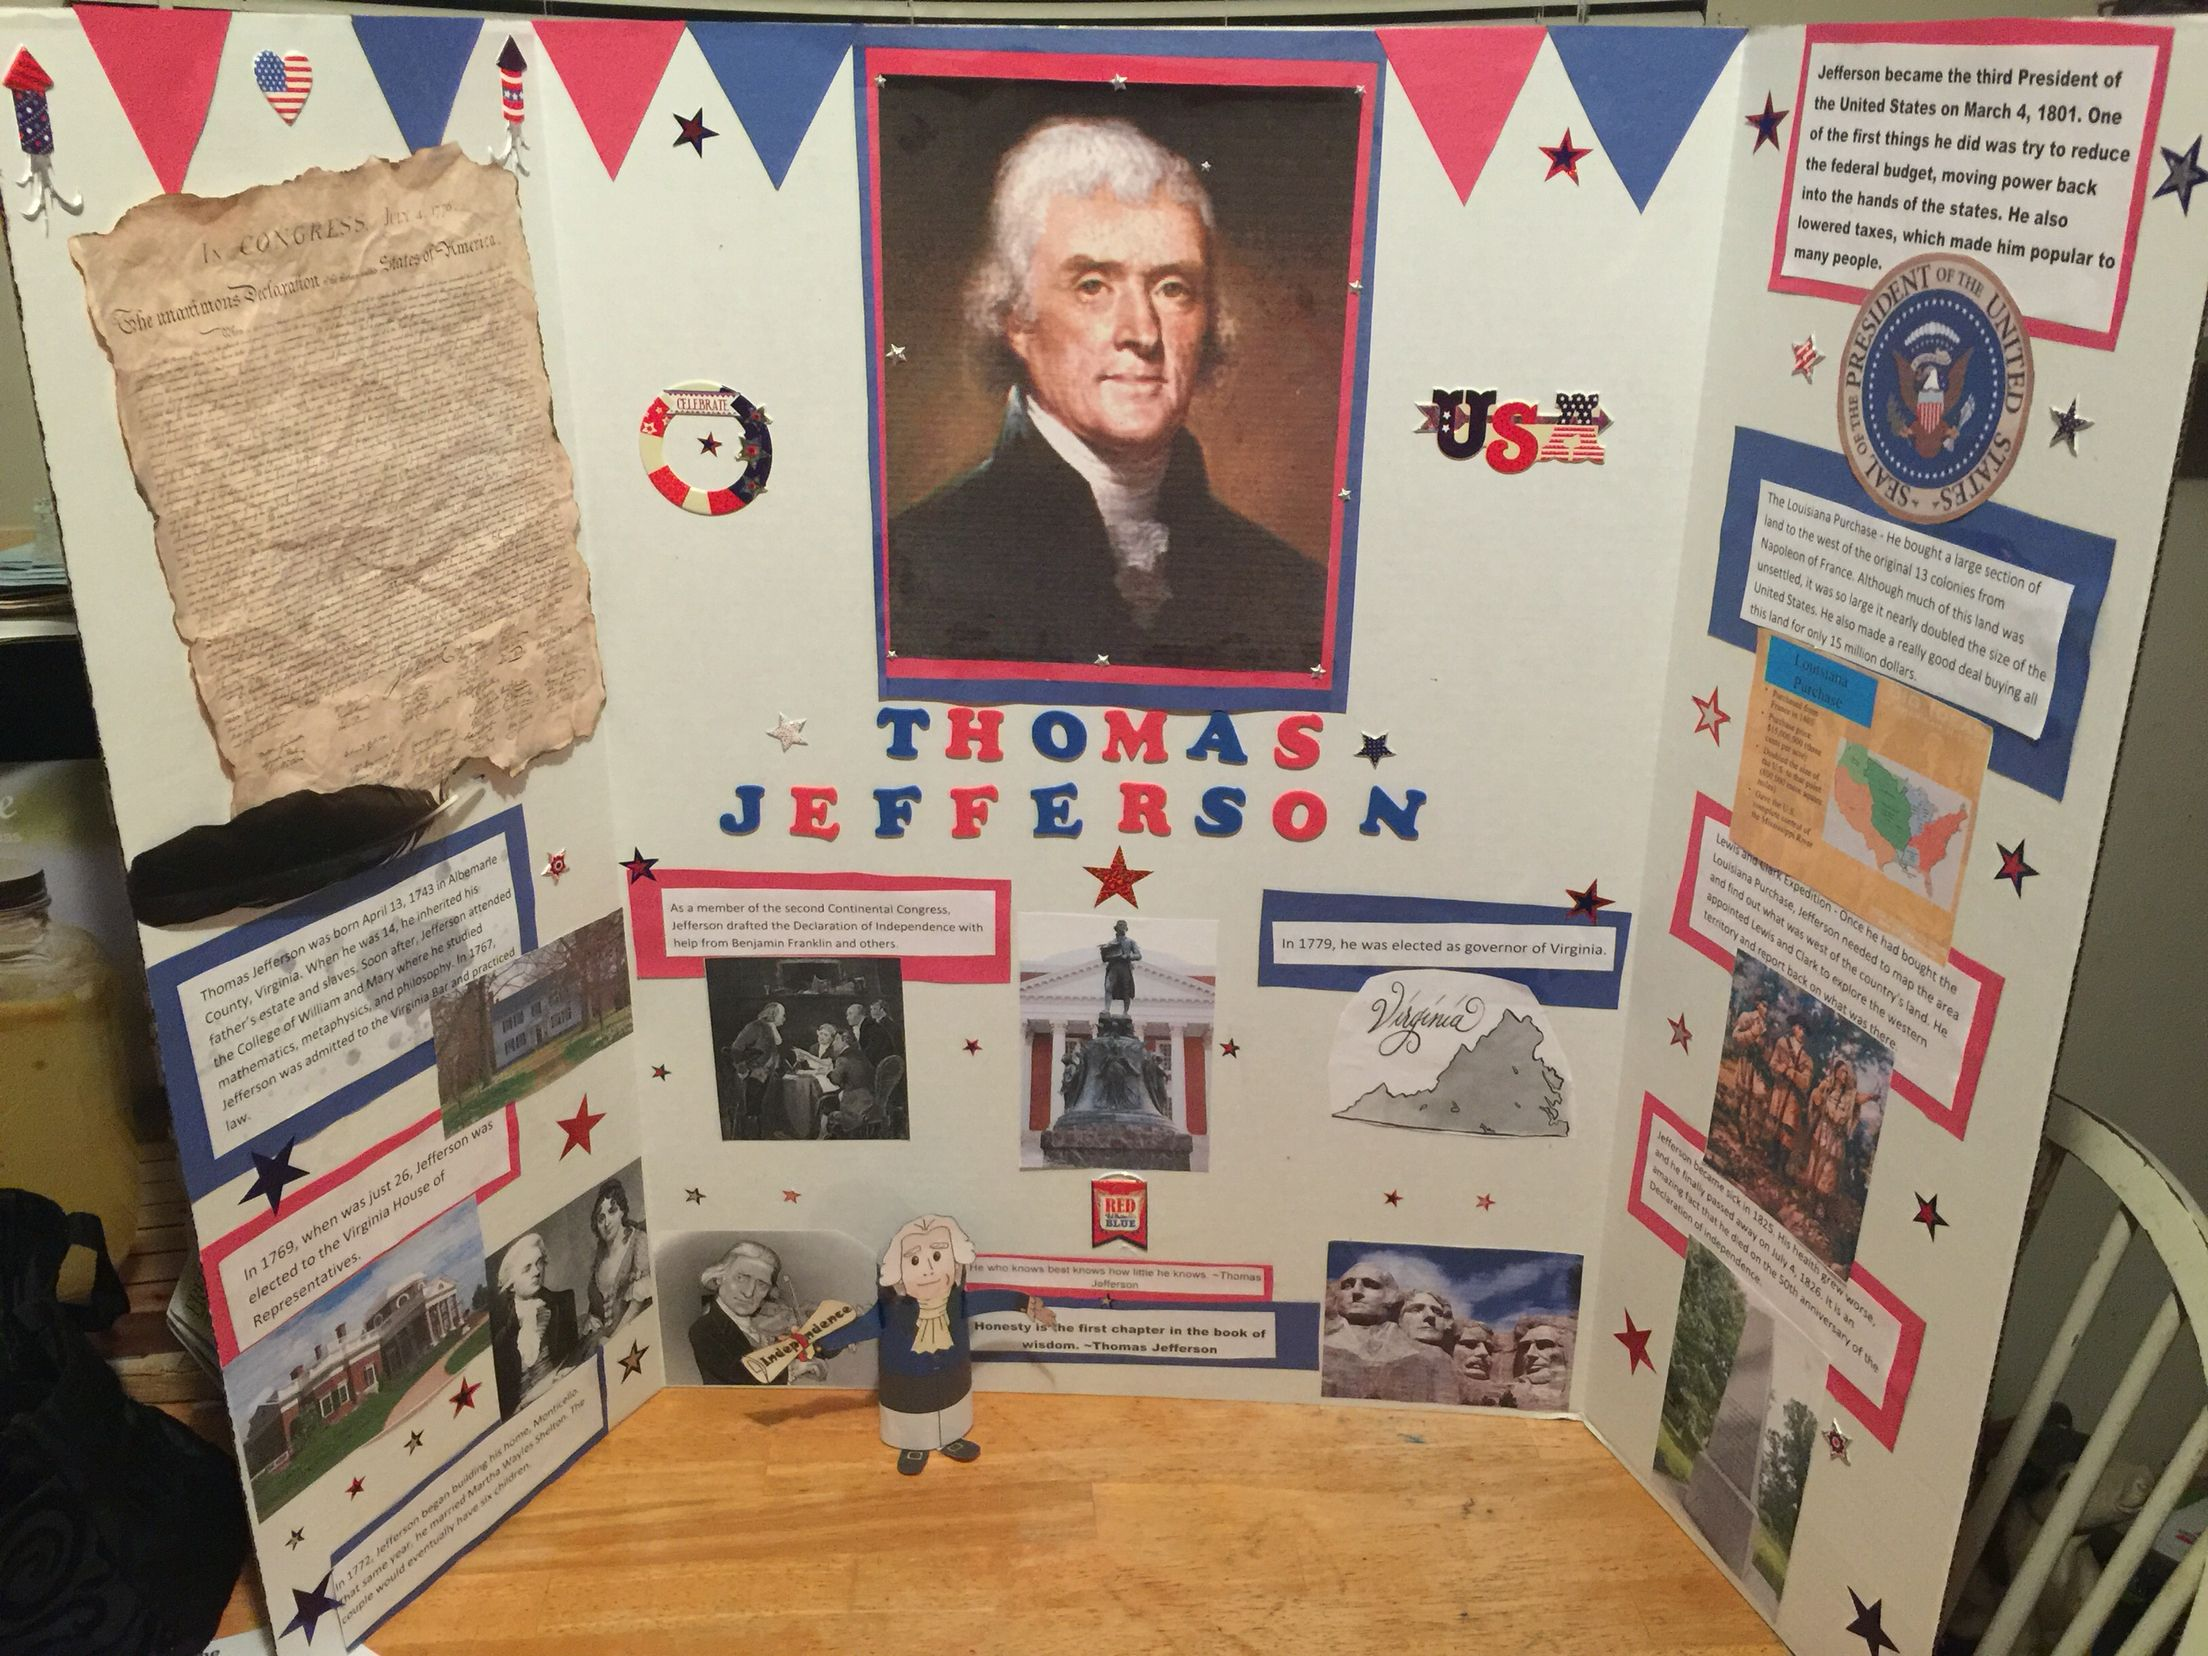 a biography of thomas jefferson an american president Thomas jefferson, a brief biography (born april 13, 1743, at shadwell, virginia died july 4, 1826, monticello)  of american independence  thomas jefferson and .